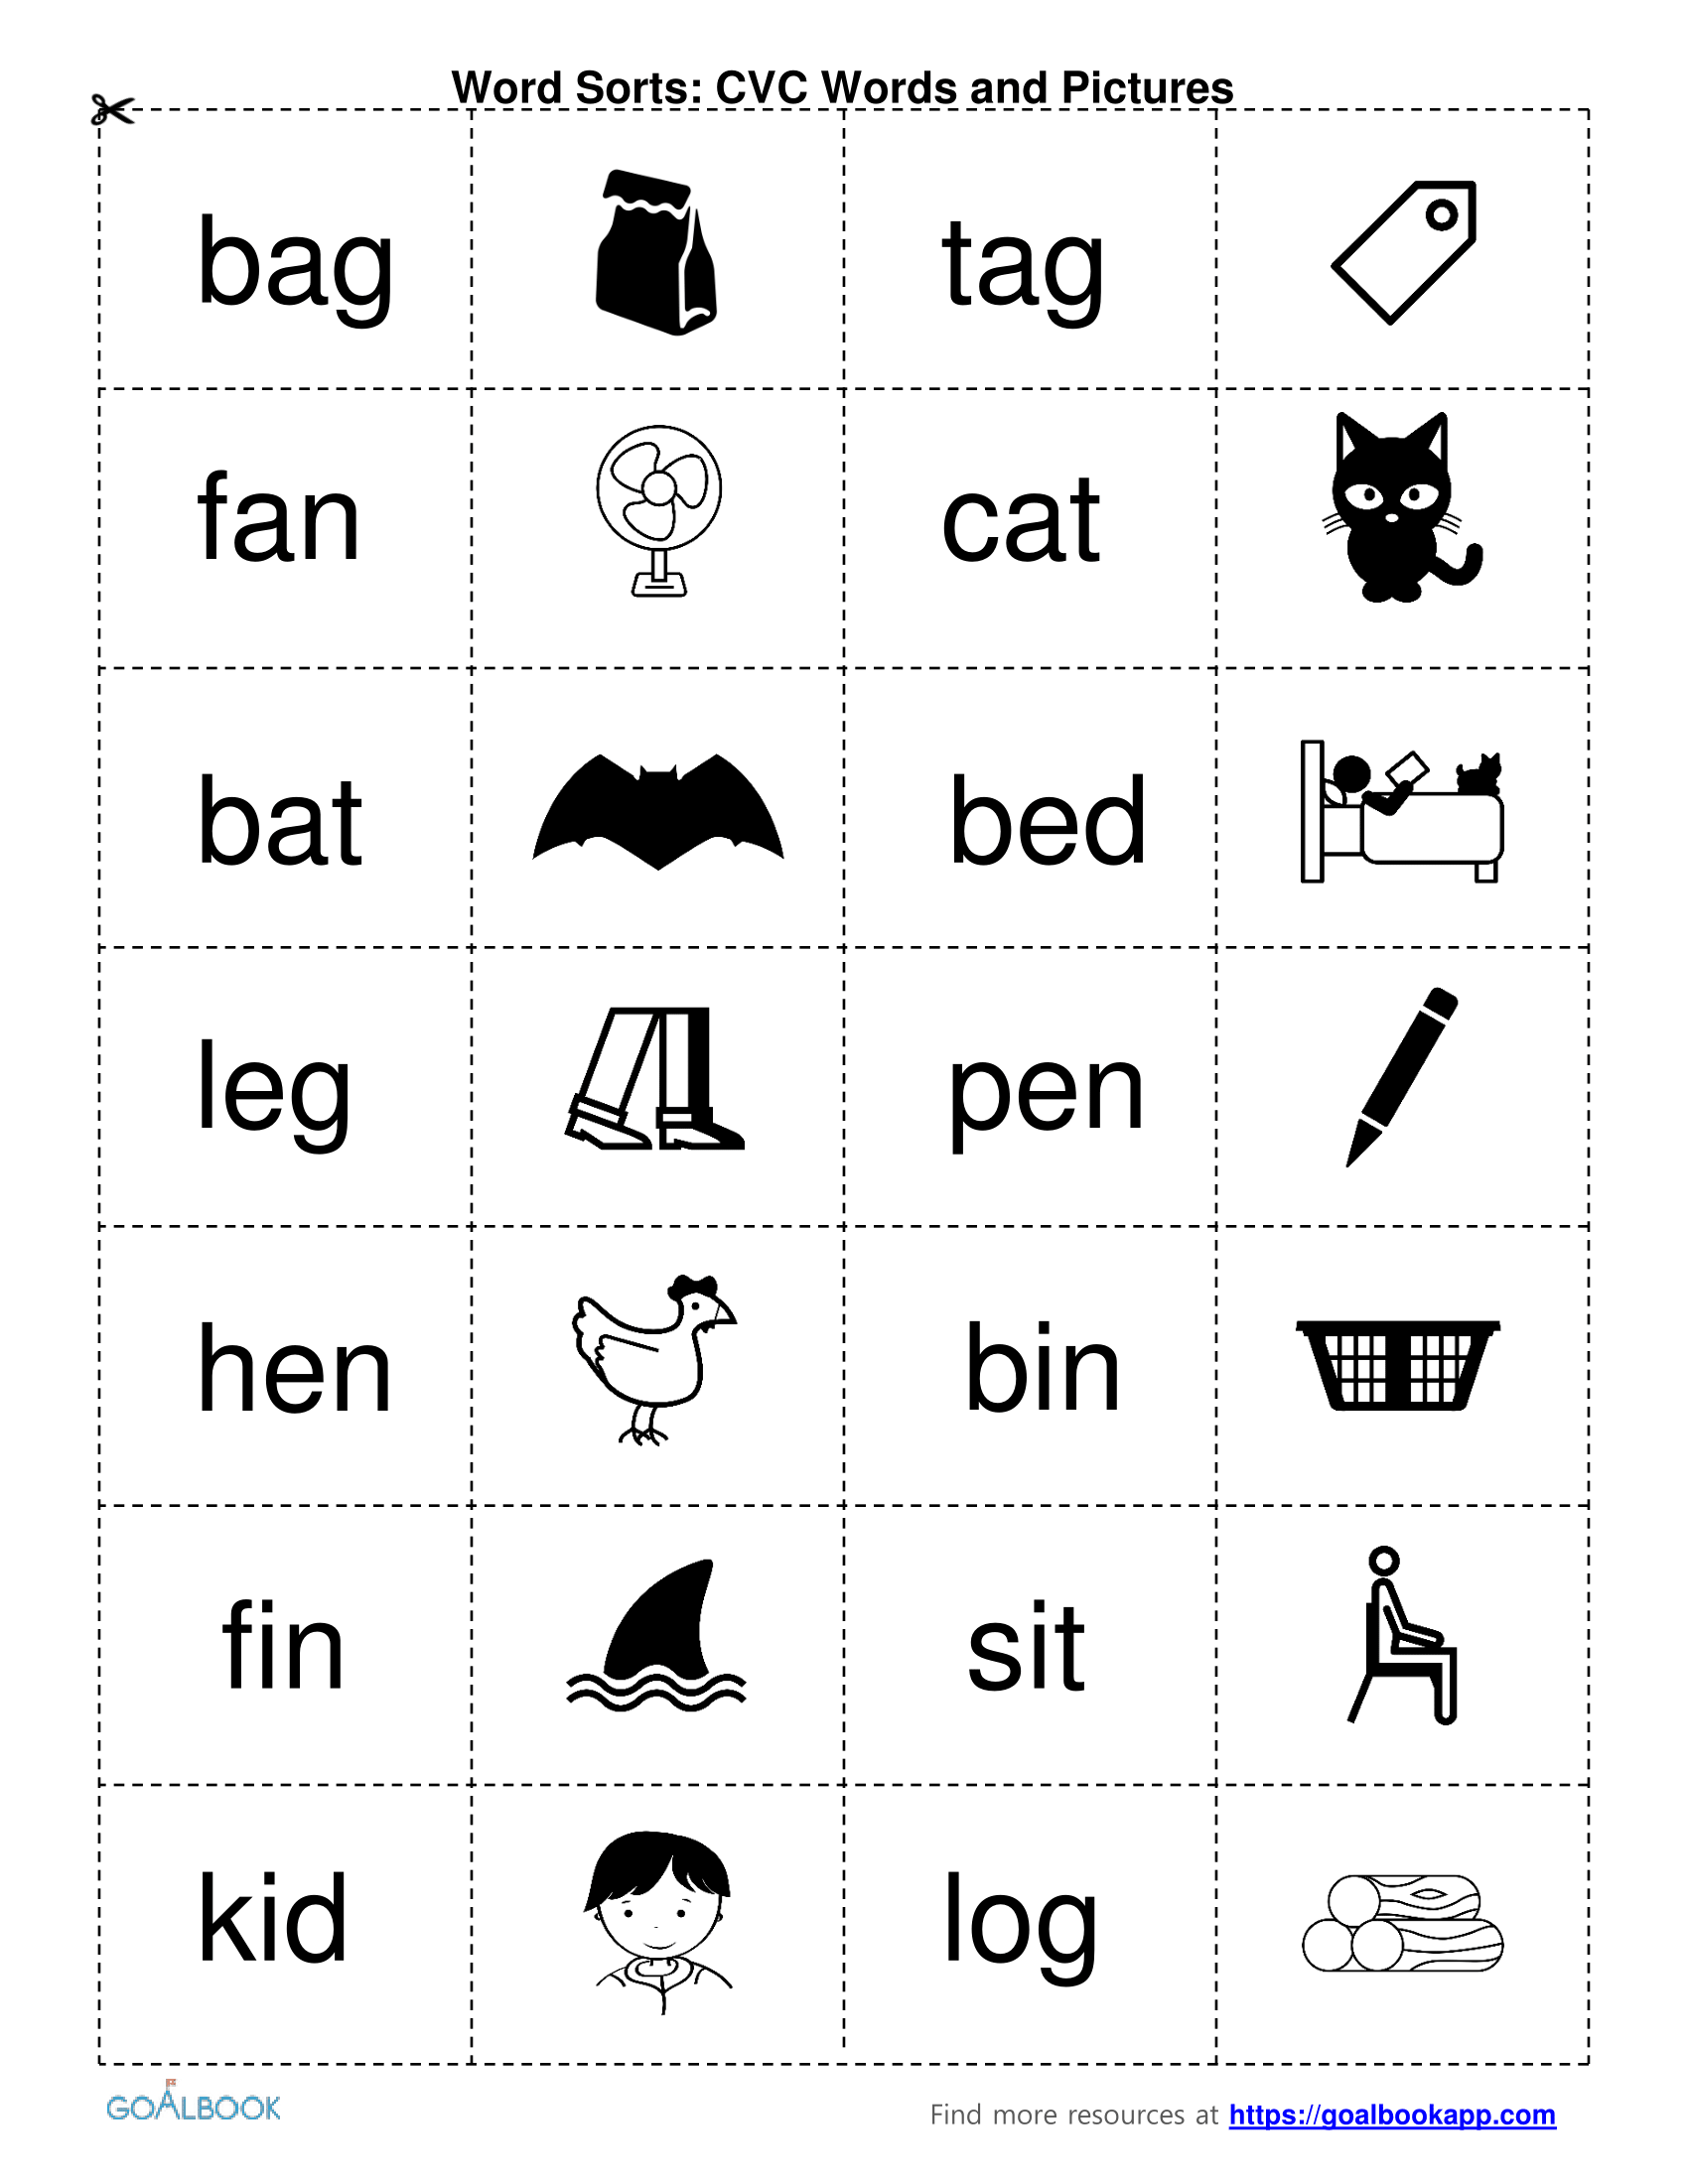 Top Word Sorts Printable